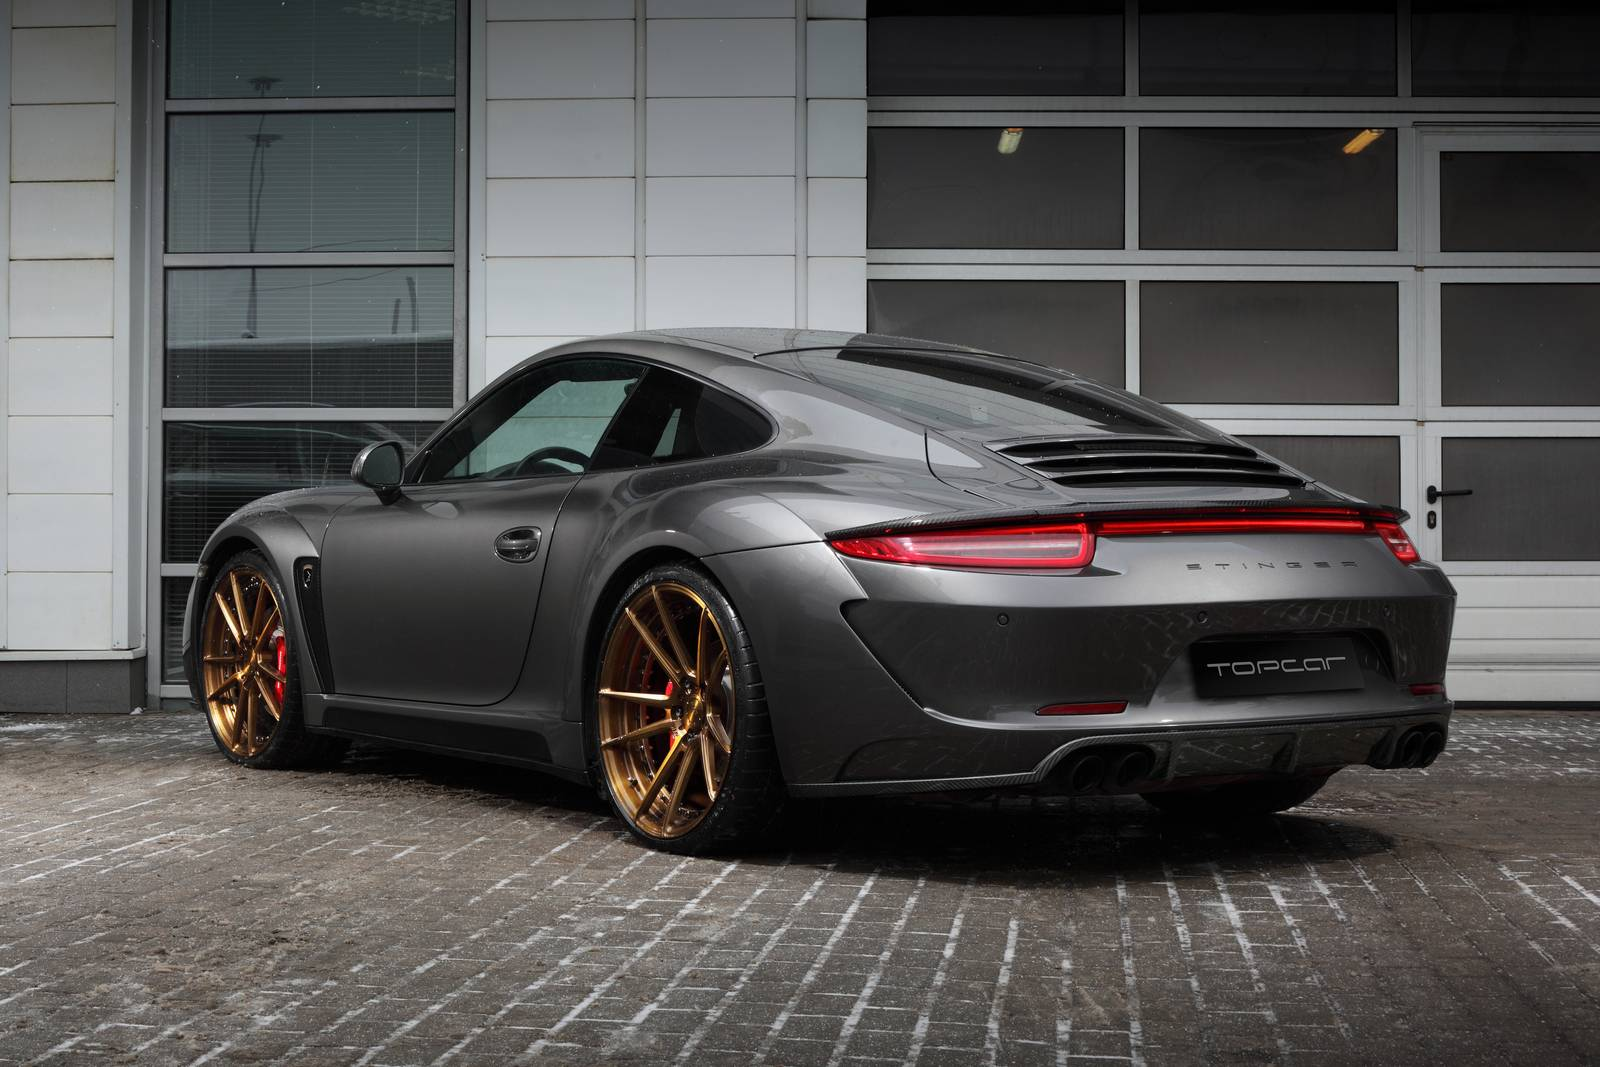 porsche carrera 4s stinger by topcar gtspirit. Black Bedroom Furniture Sets. Home Design Ideas